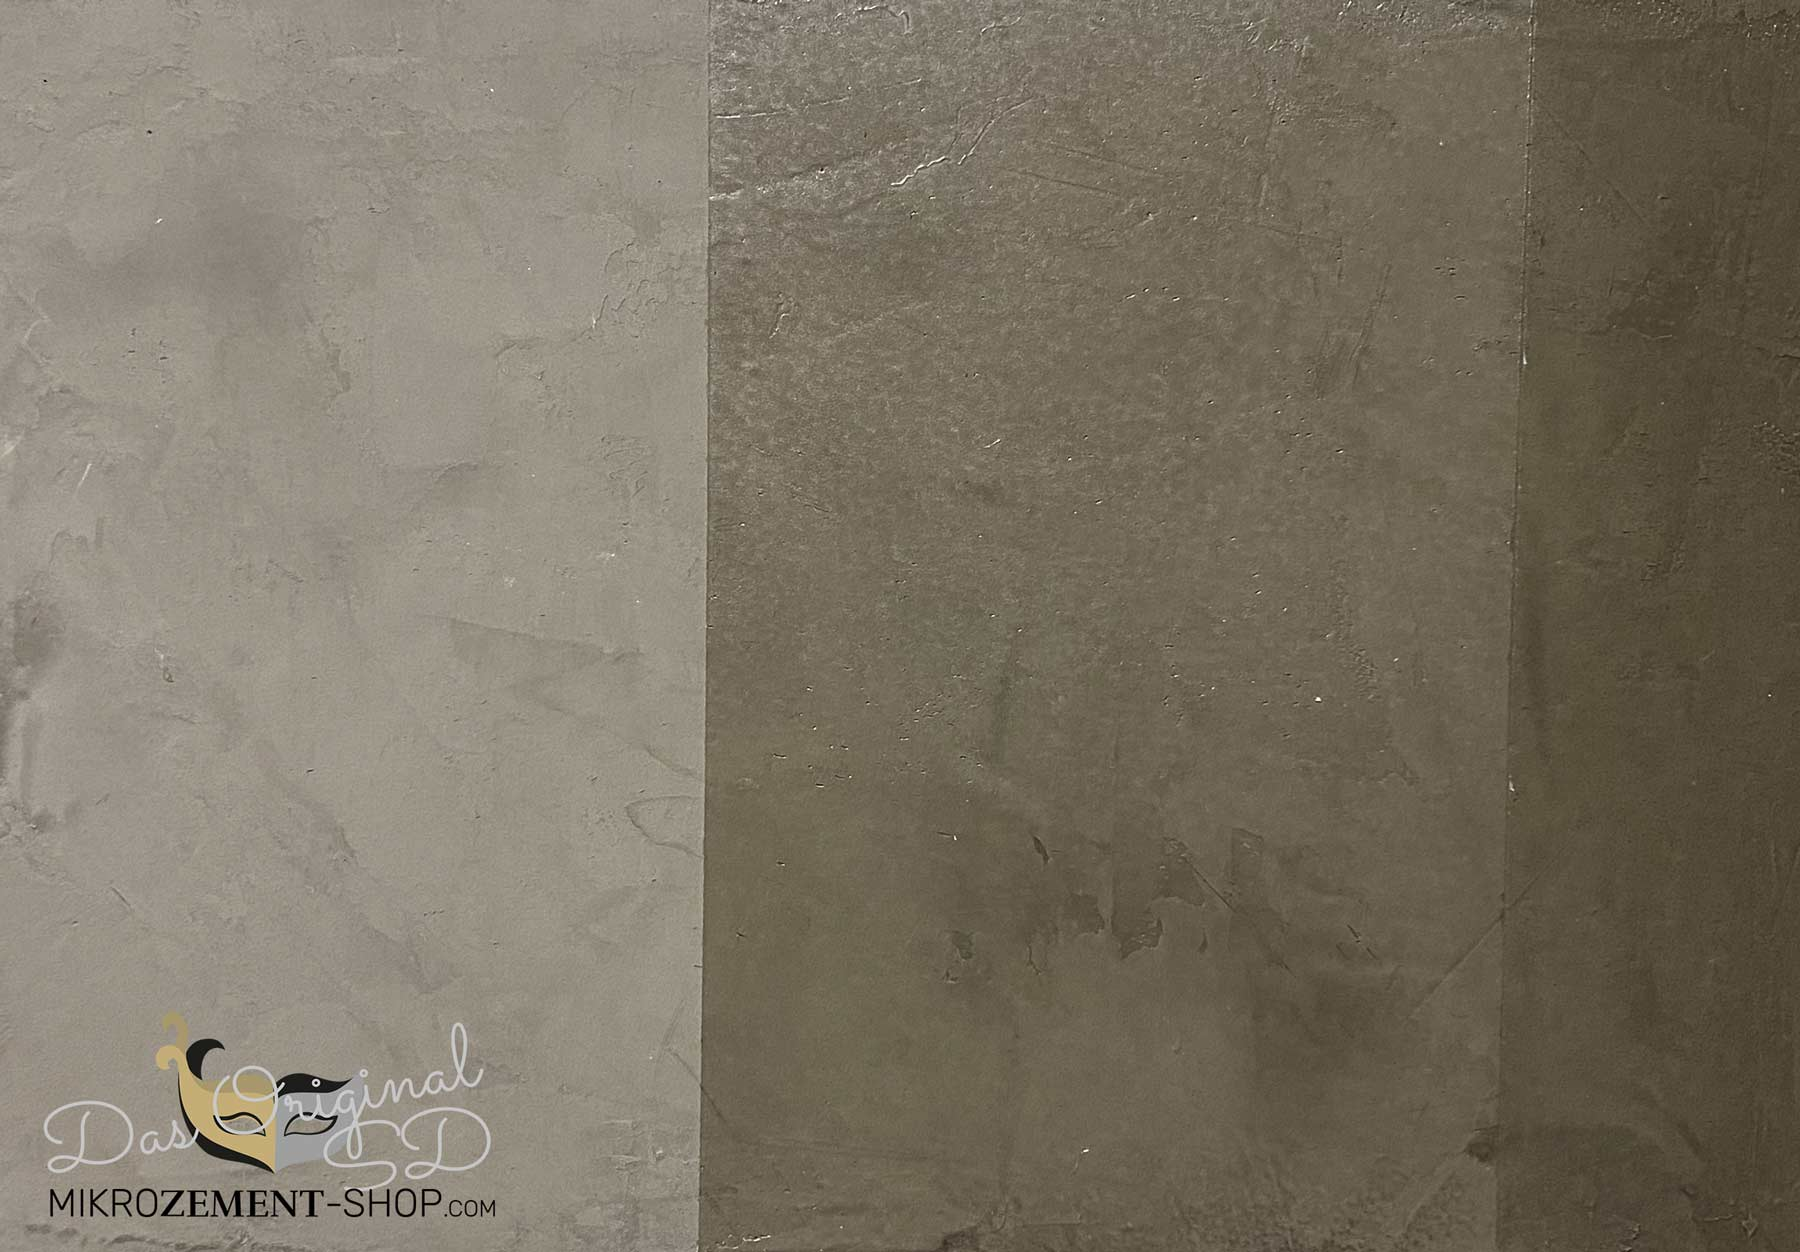 Mikrozement Farbe Taupe